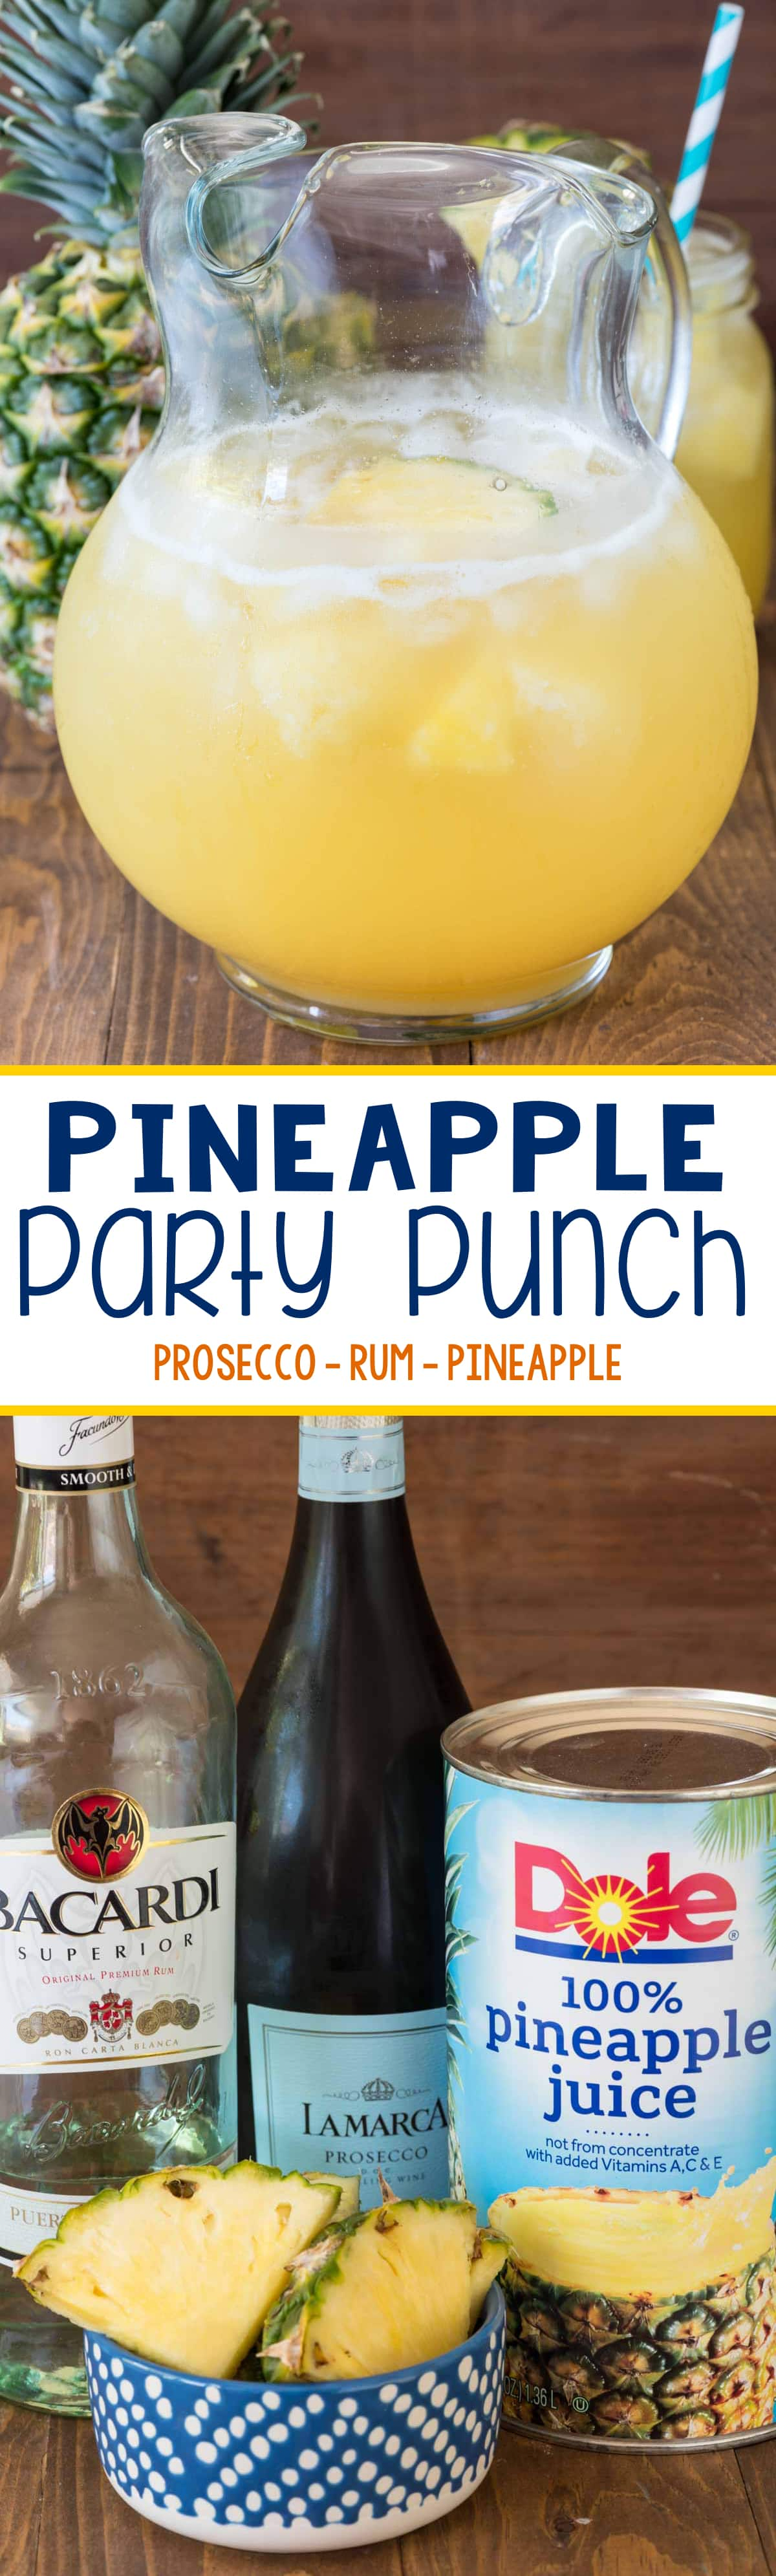 Pineapple Party Punch - Crazy for Crust